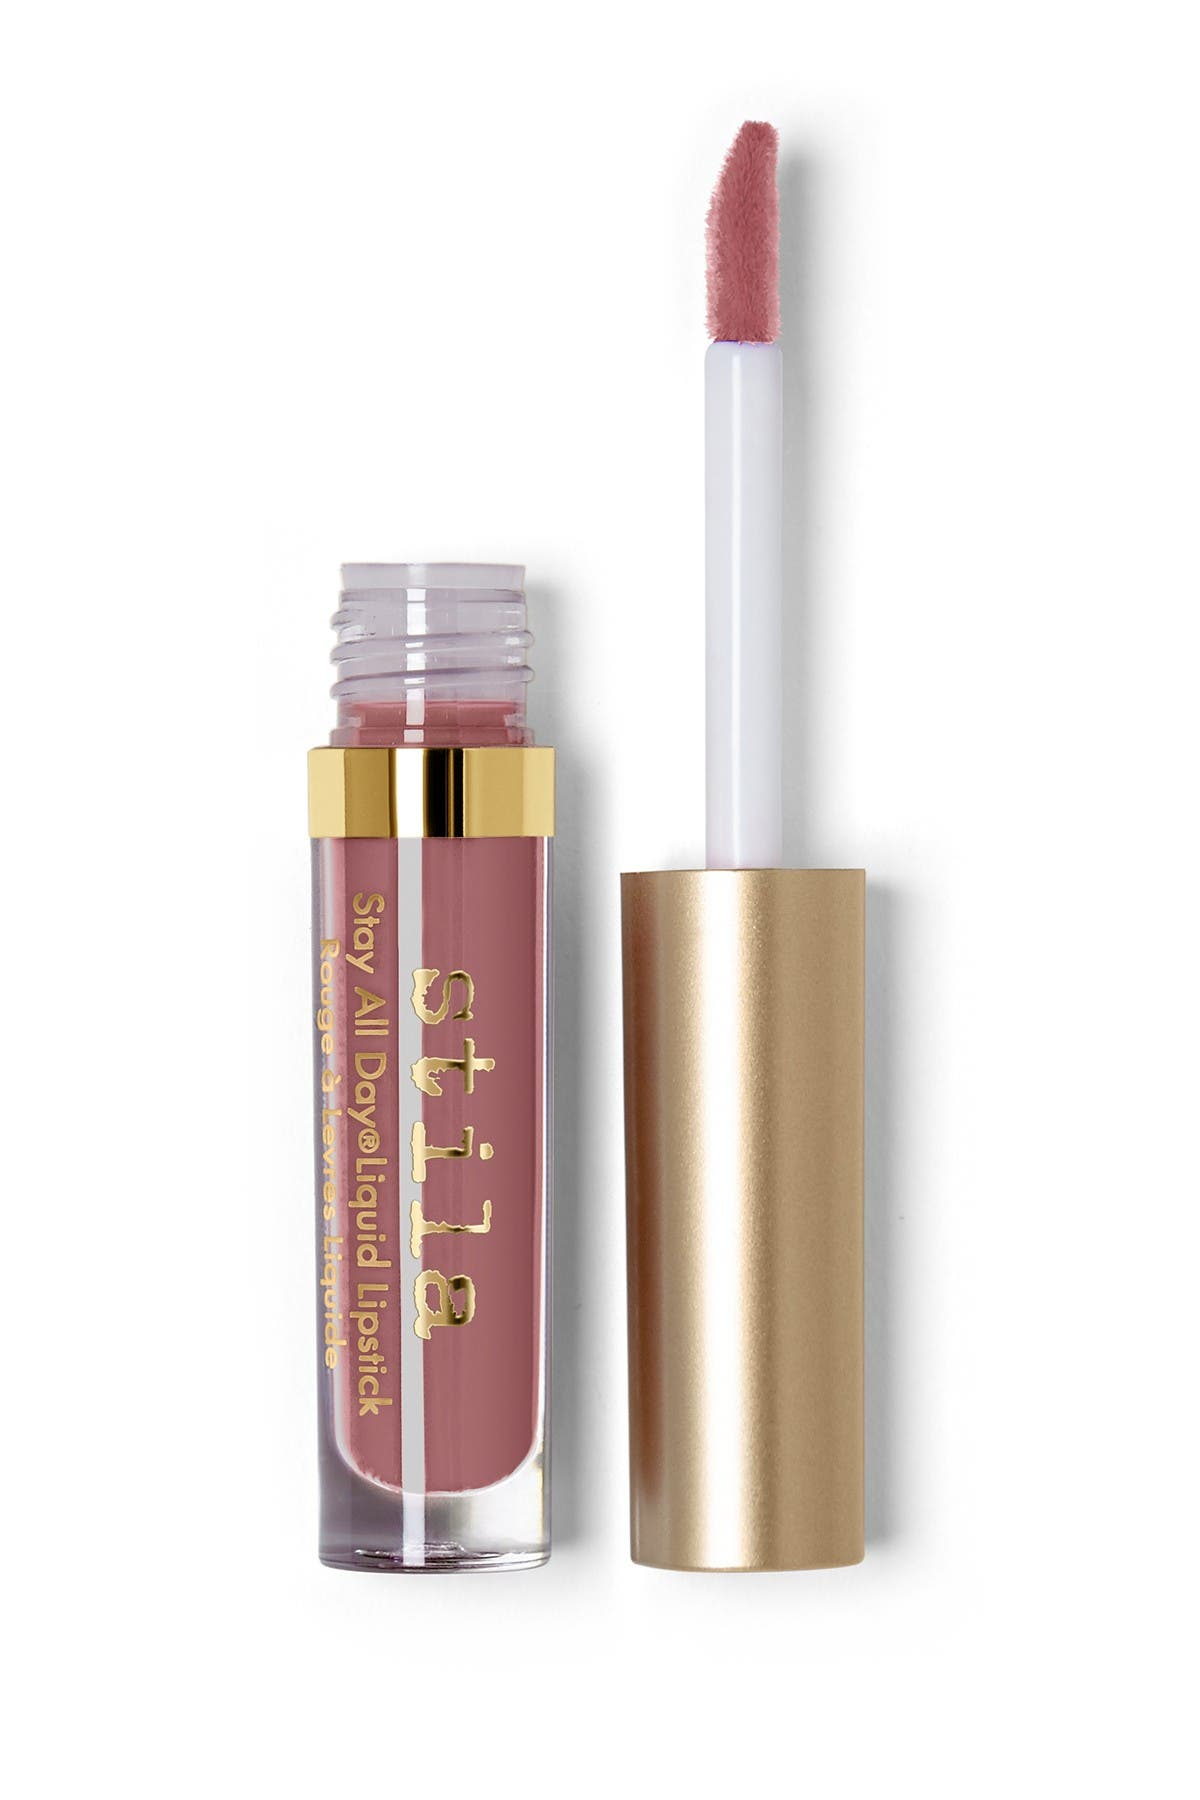 Image of Stila Stay All Day® Liquid Lipstick, 0.05 fl oz - Travel Size - Perla